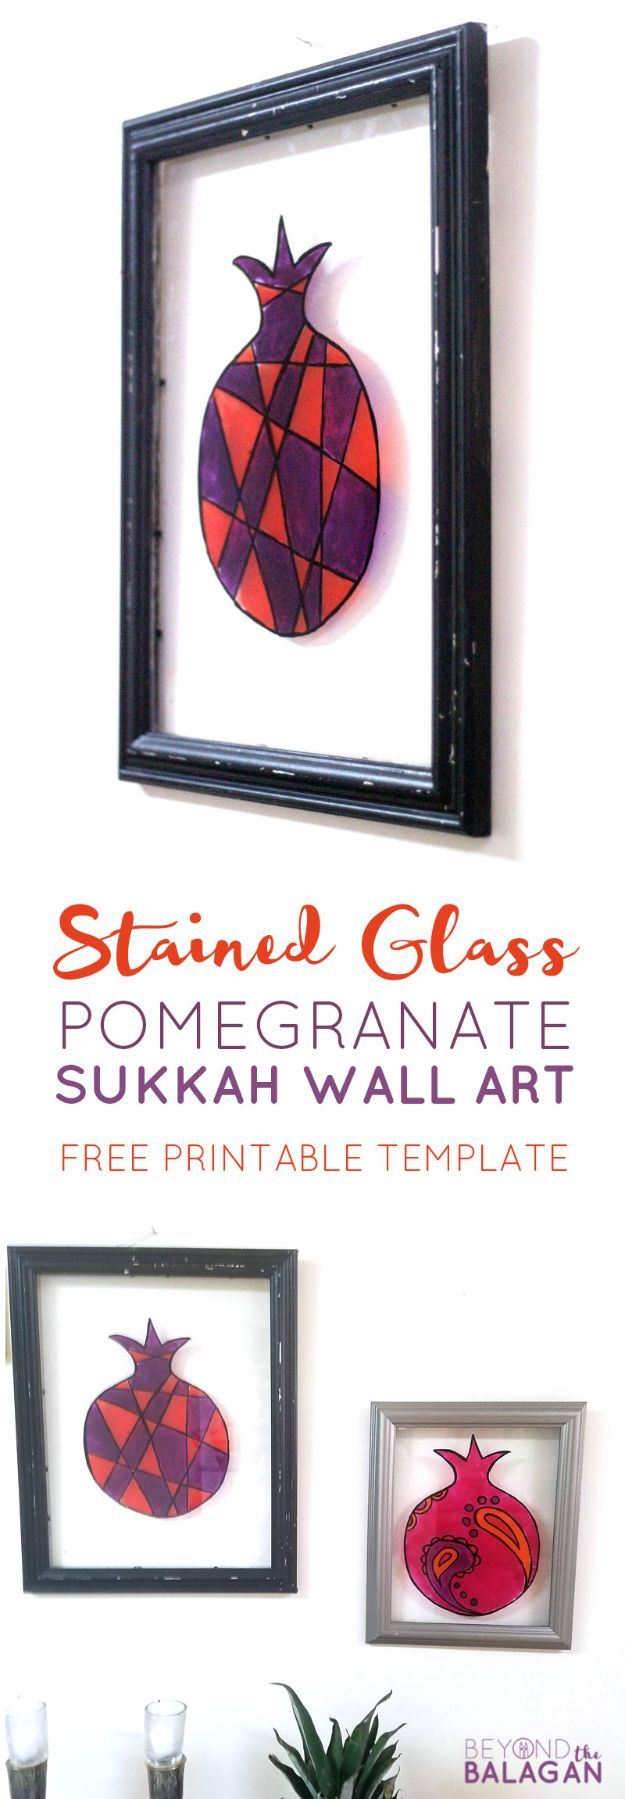 DIY Wall Art Ideas for Teens - Stained Glass Pomegranate Sukkah Wall Art - Teen Boy and Girl Bedroom Wall Decor Ideas - Goedkope canvasschilderijen en wandkleden voor kamerdecoratie